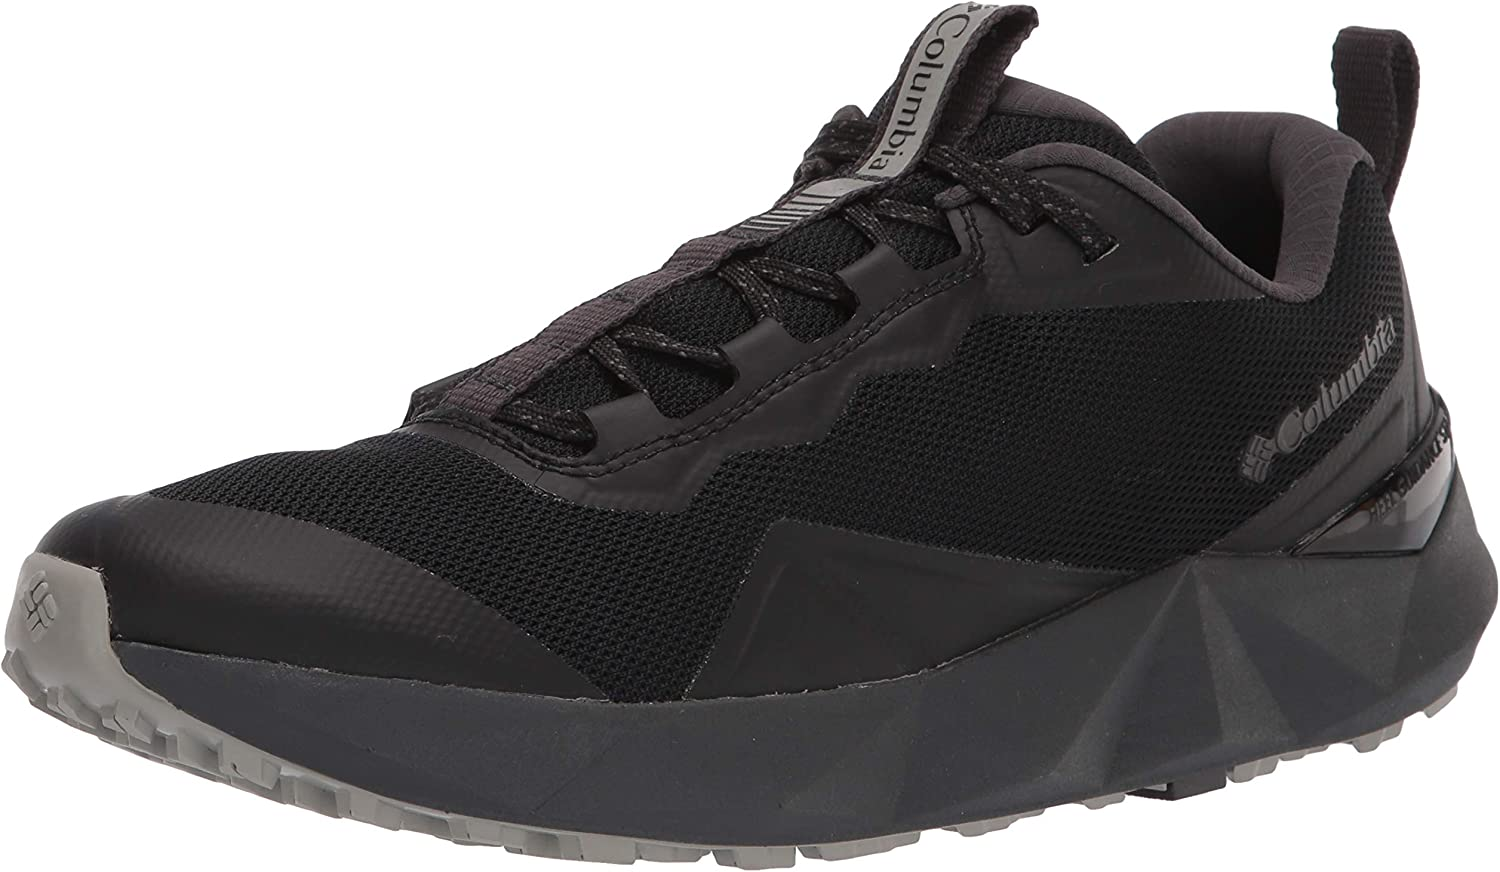 Columbia Women's Facet Hiking Shoe Max 71% OFF 15 Product